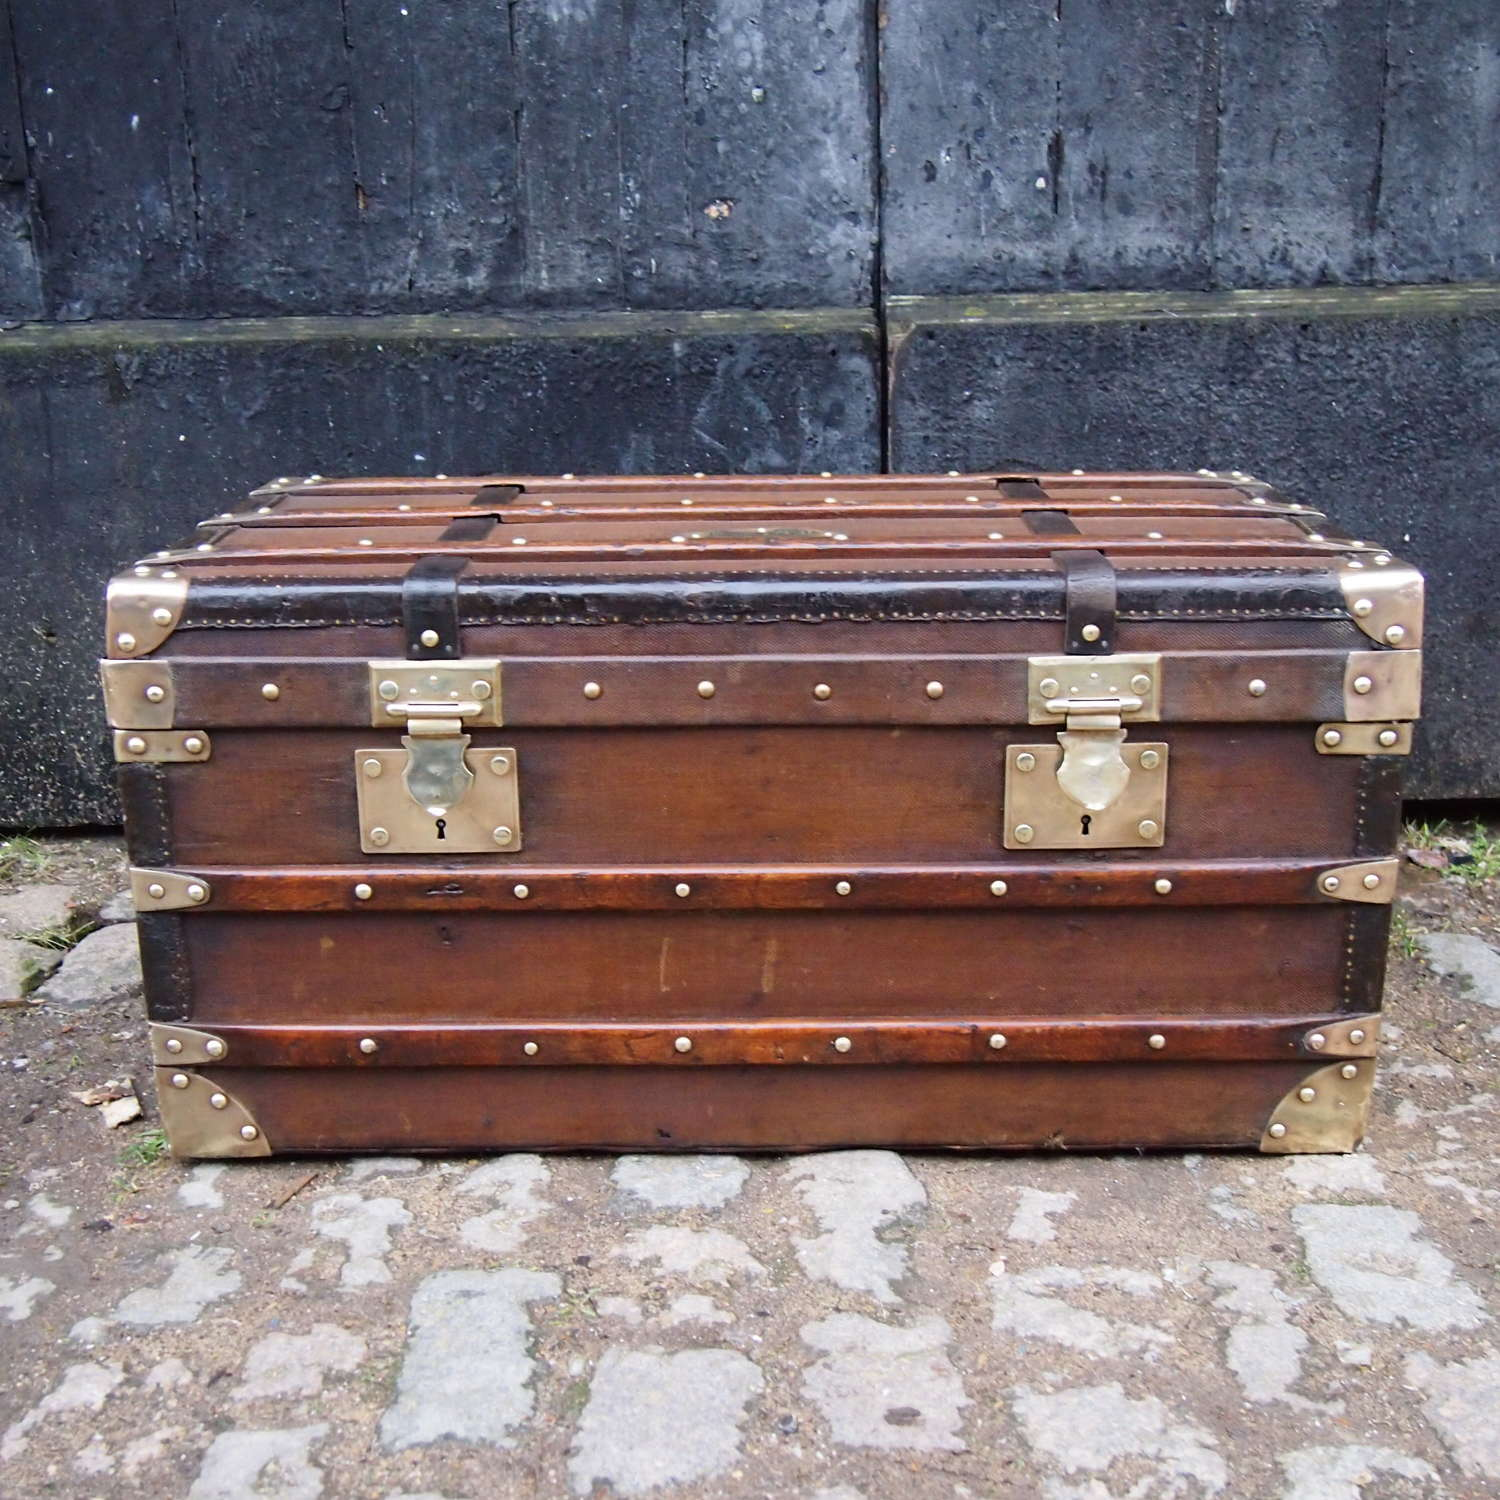 Antique French Trunk Wood banded Canvas with Brass fittings.W8619